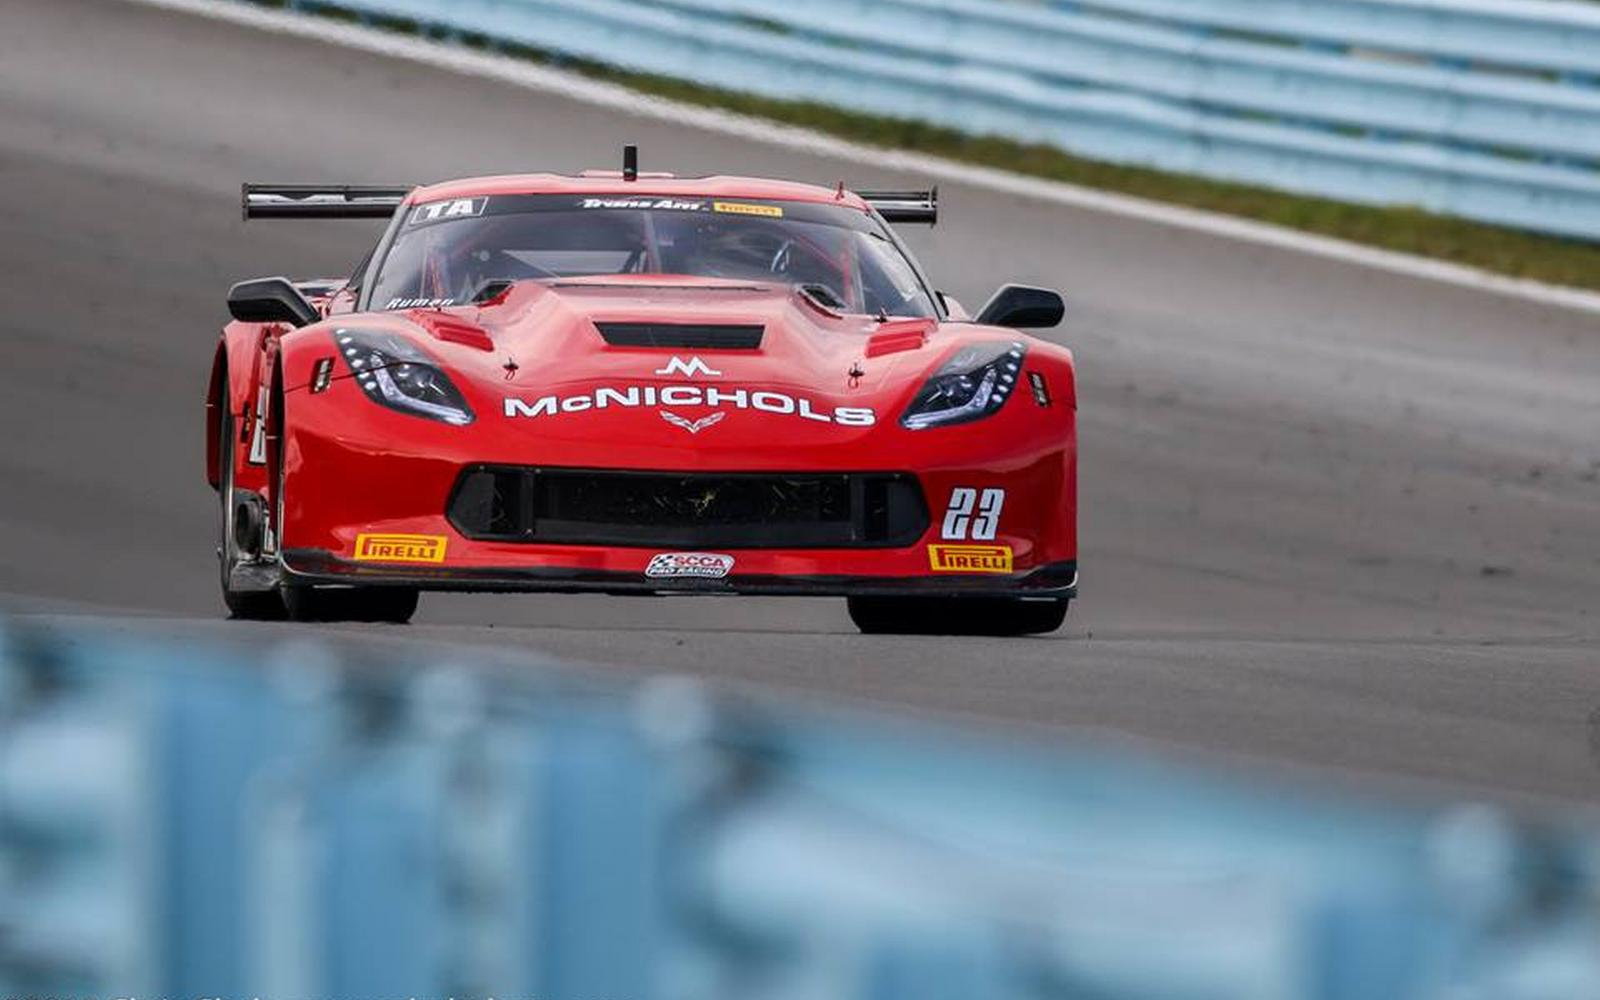 P4 at Road America for Ruman – On to Round 8 at Watkins Glen